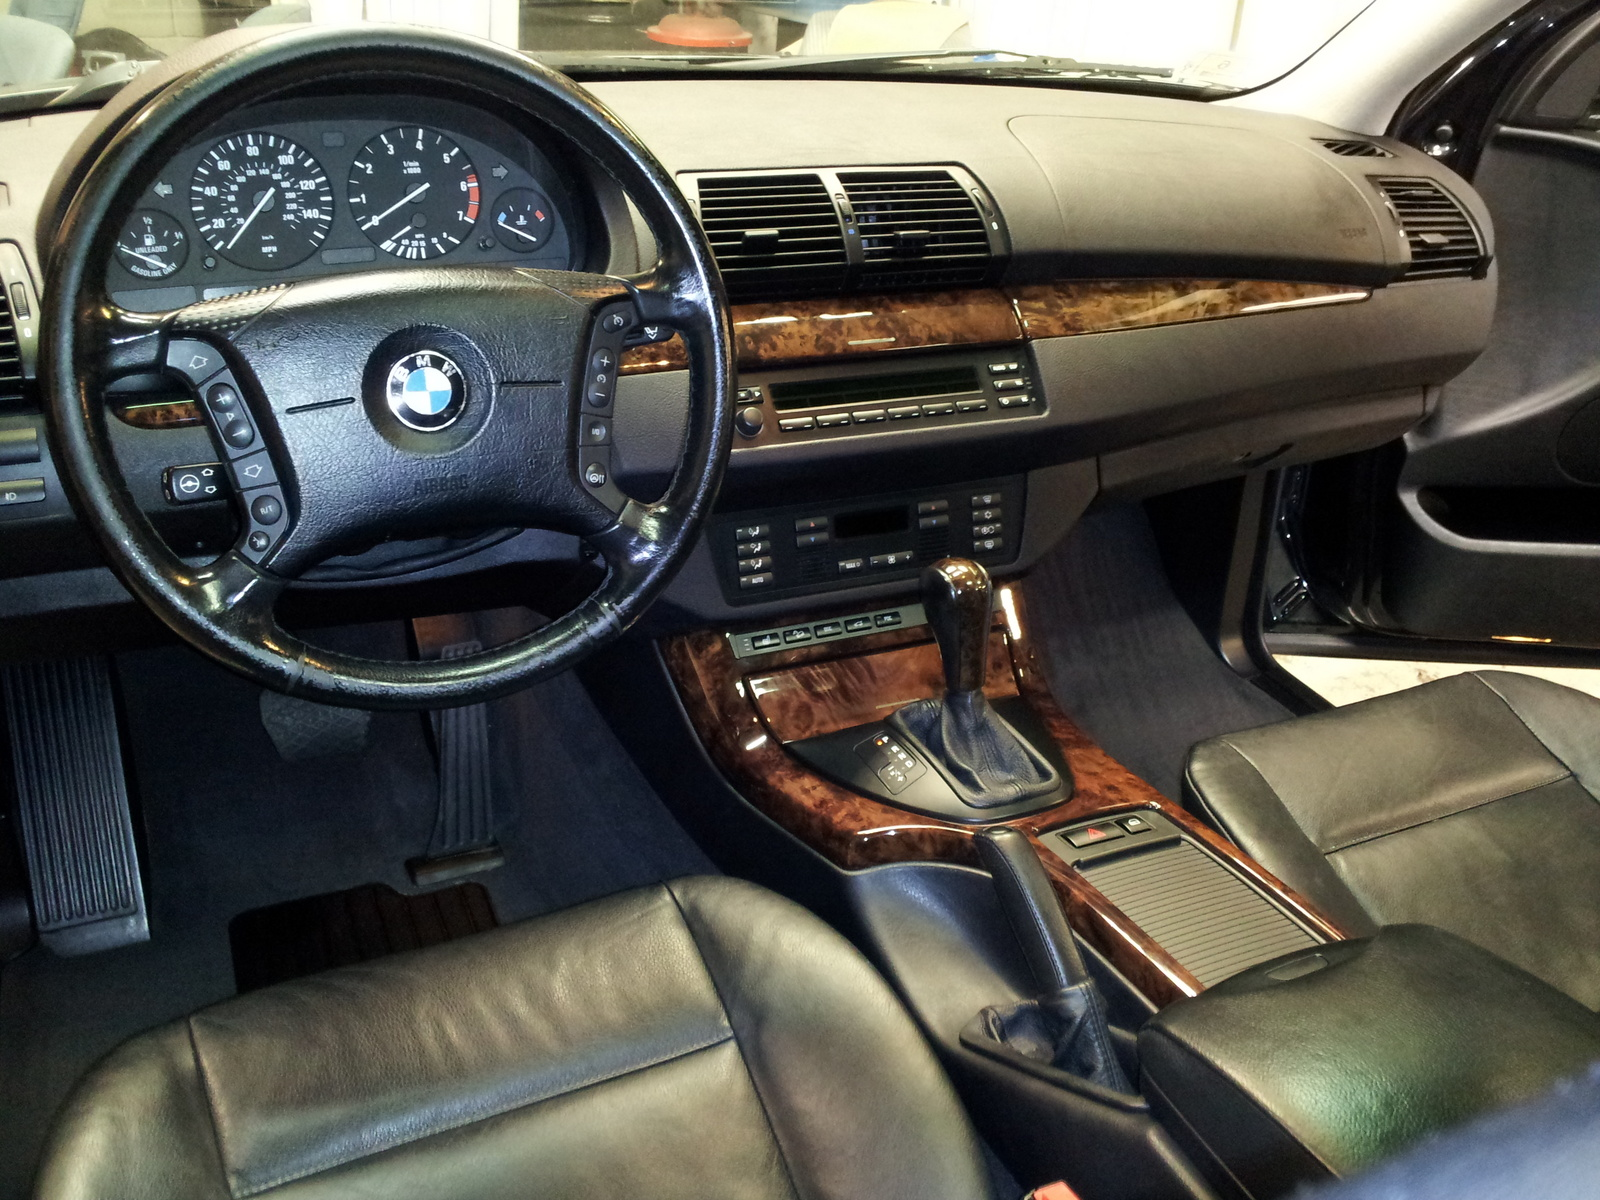 2003 Bmw X5 Interior Pictures Cargurus